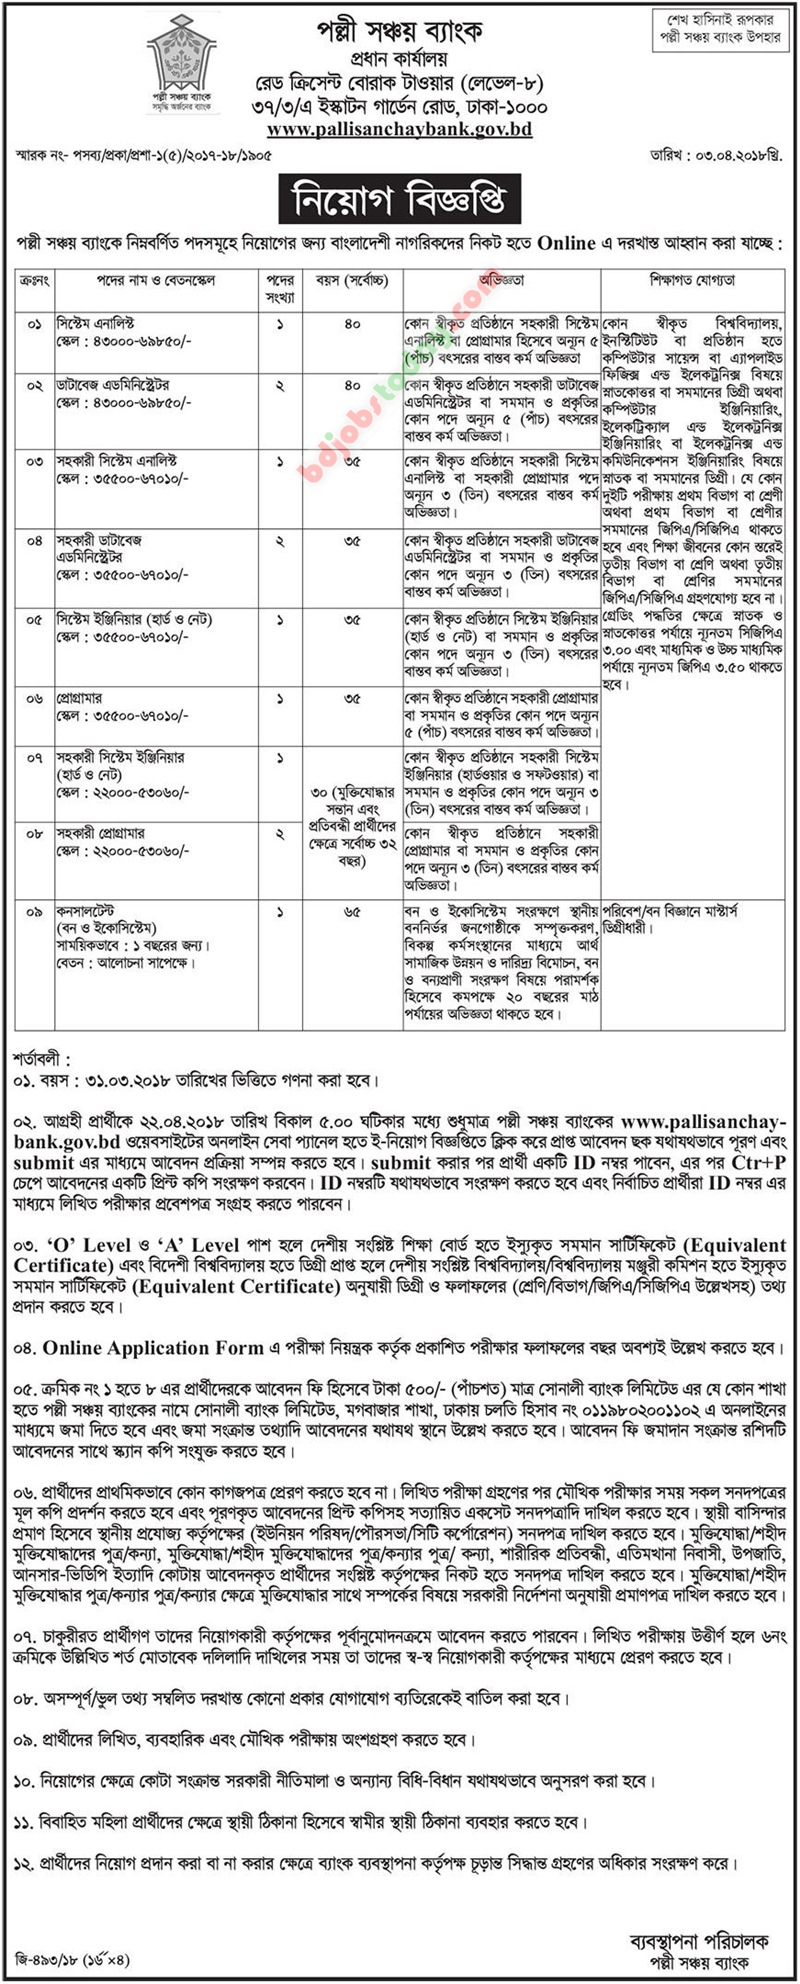 Palli Sanchay Bank jobs